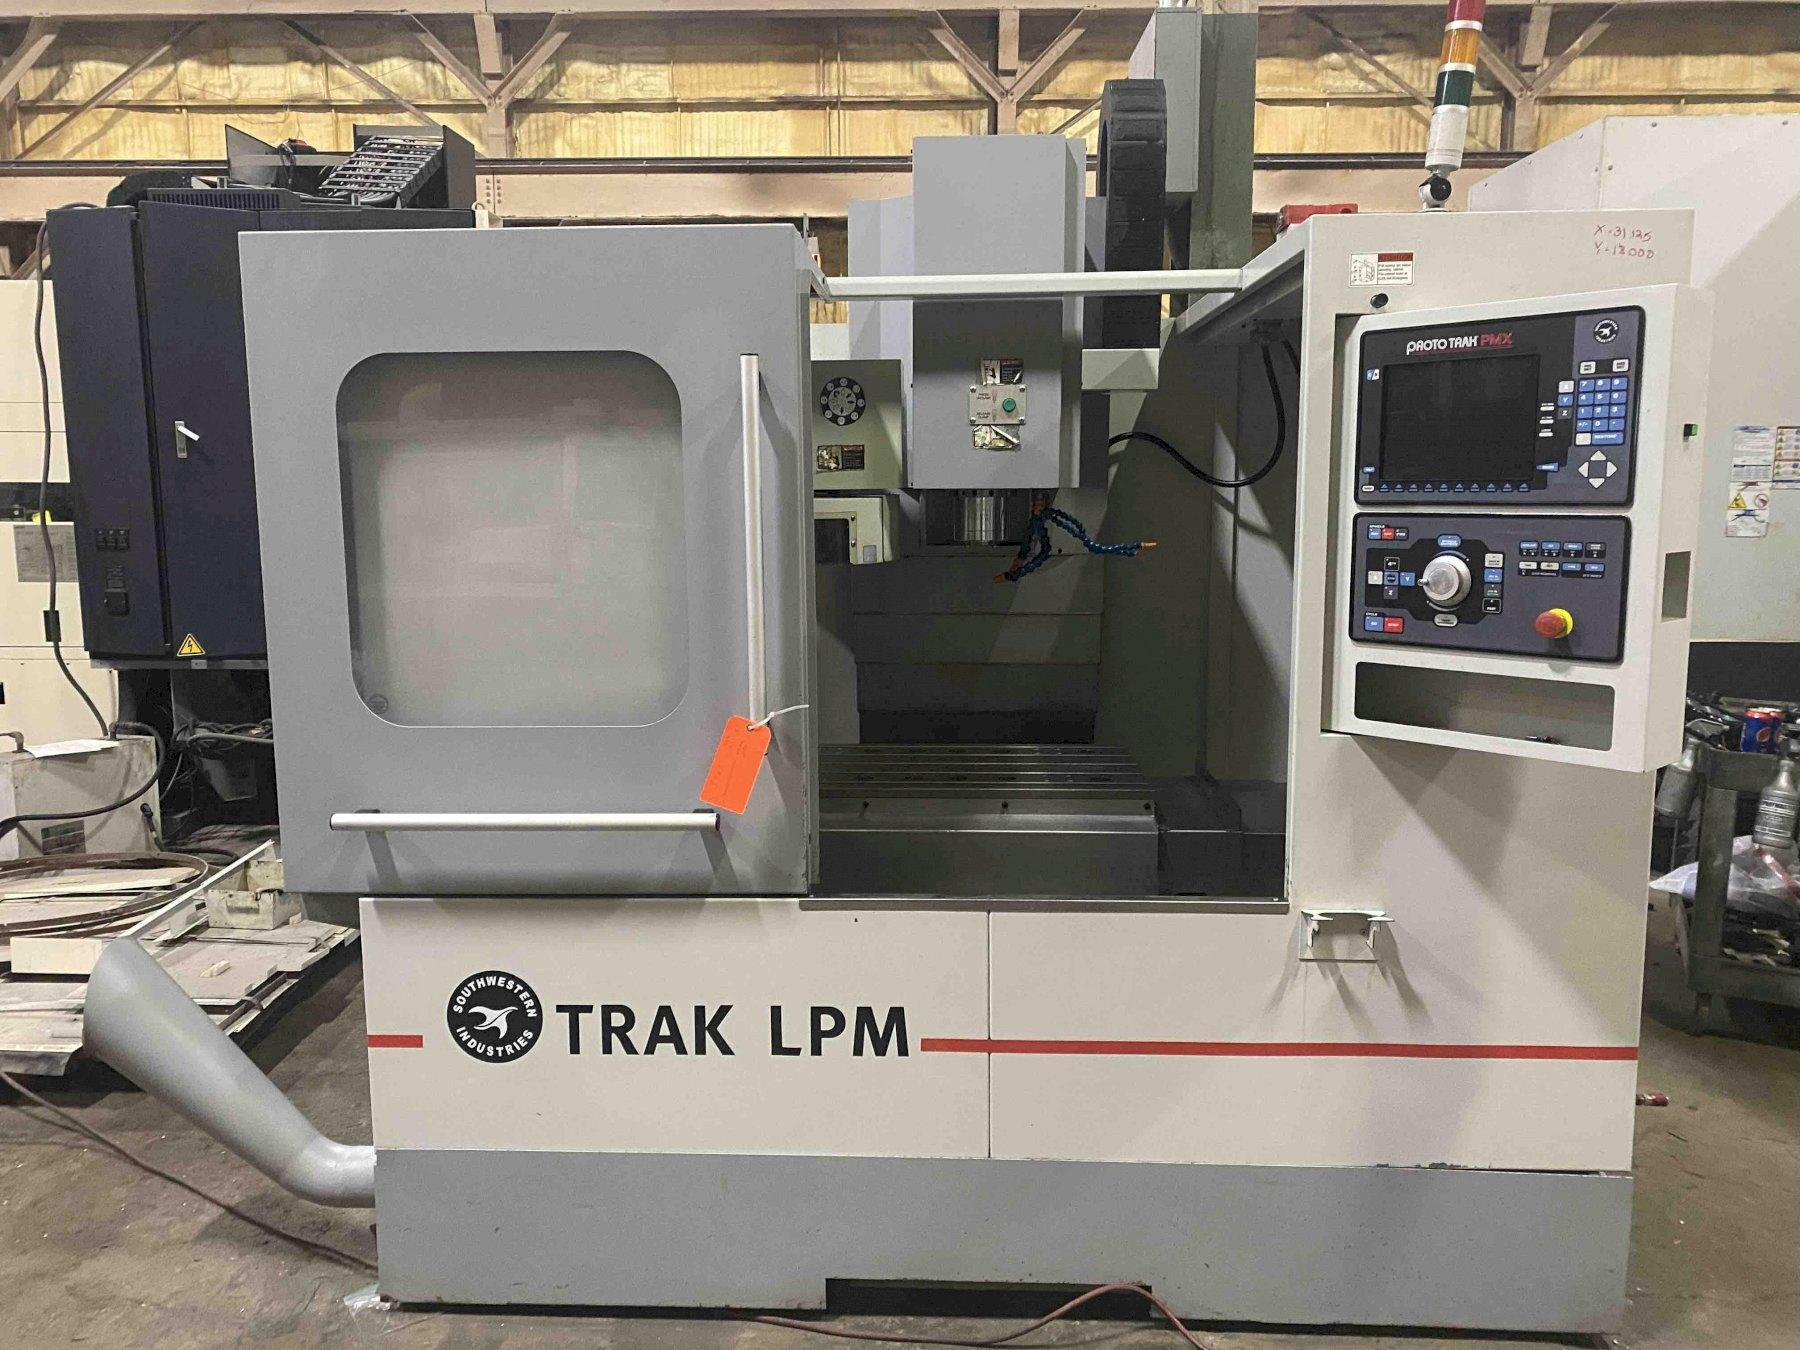 Southwestern Industries LPM CNC Vertical Machining Center, Prototrak PMX, 31